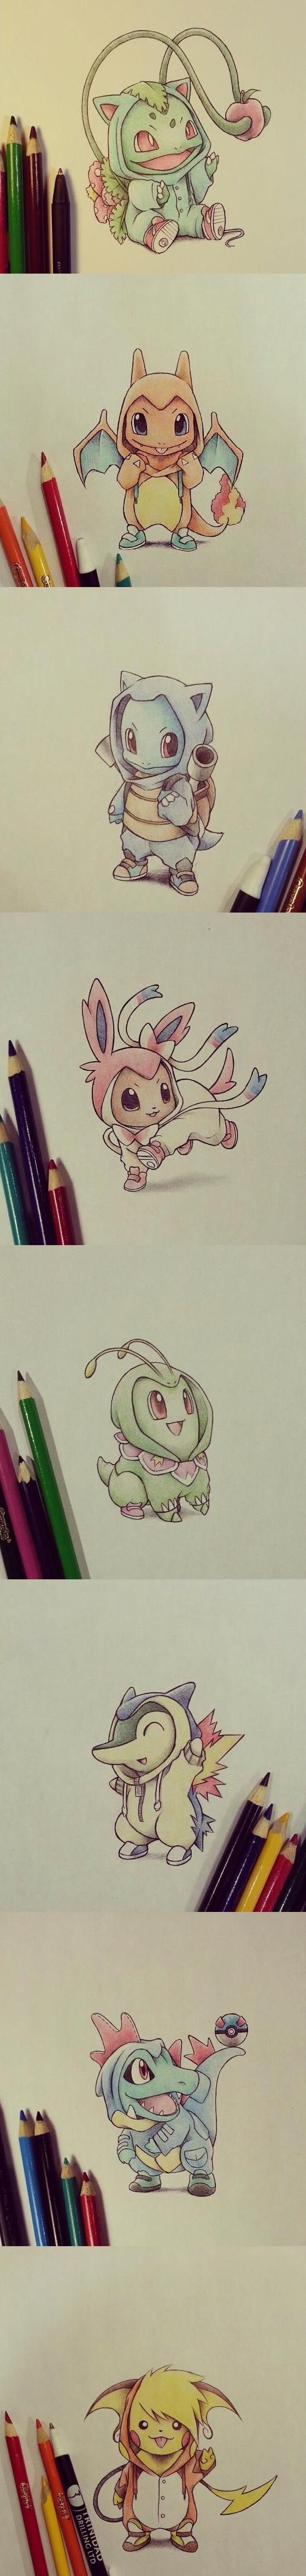 Pokémon Cosplaying as their final evolutions!